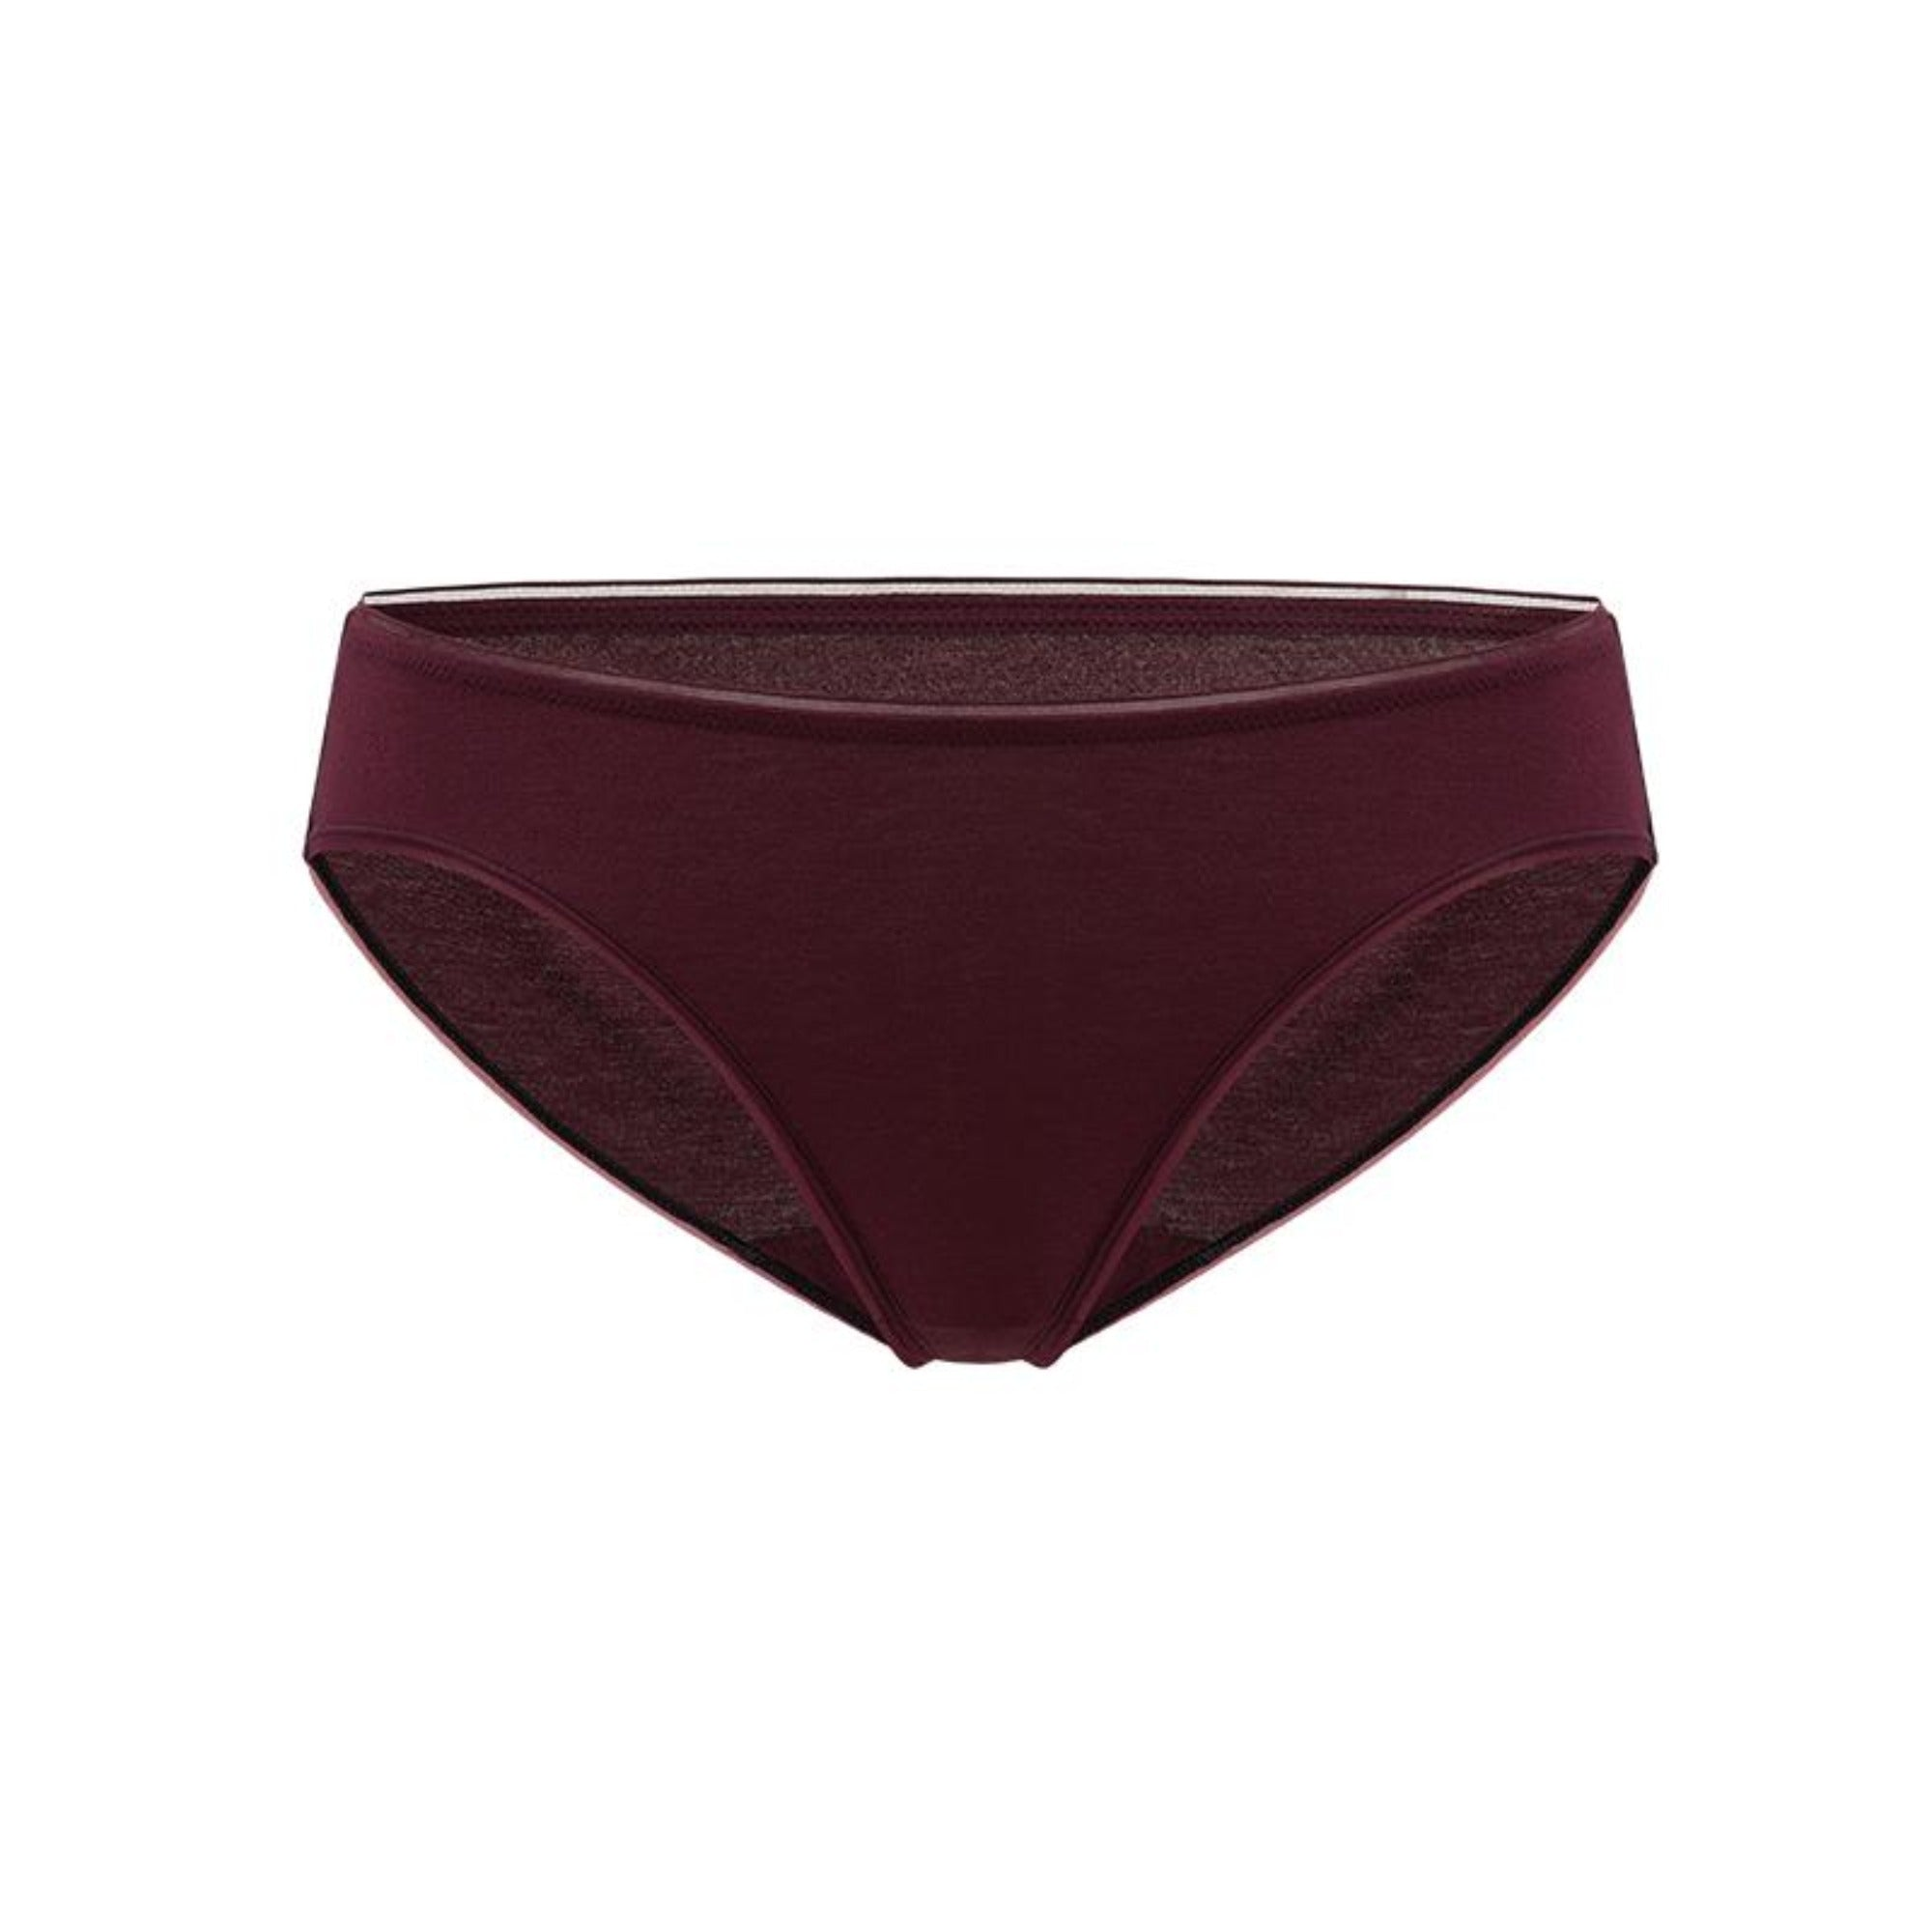 NEIWAI Hollow Stitching Low Waist Briefs in Grape Wine